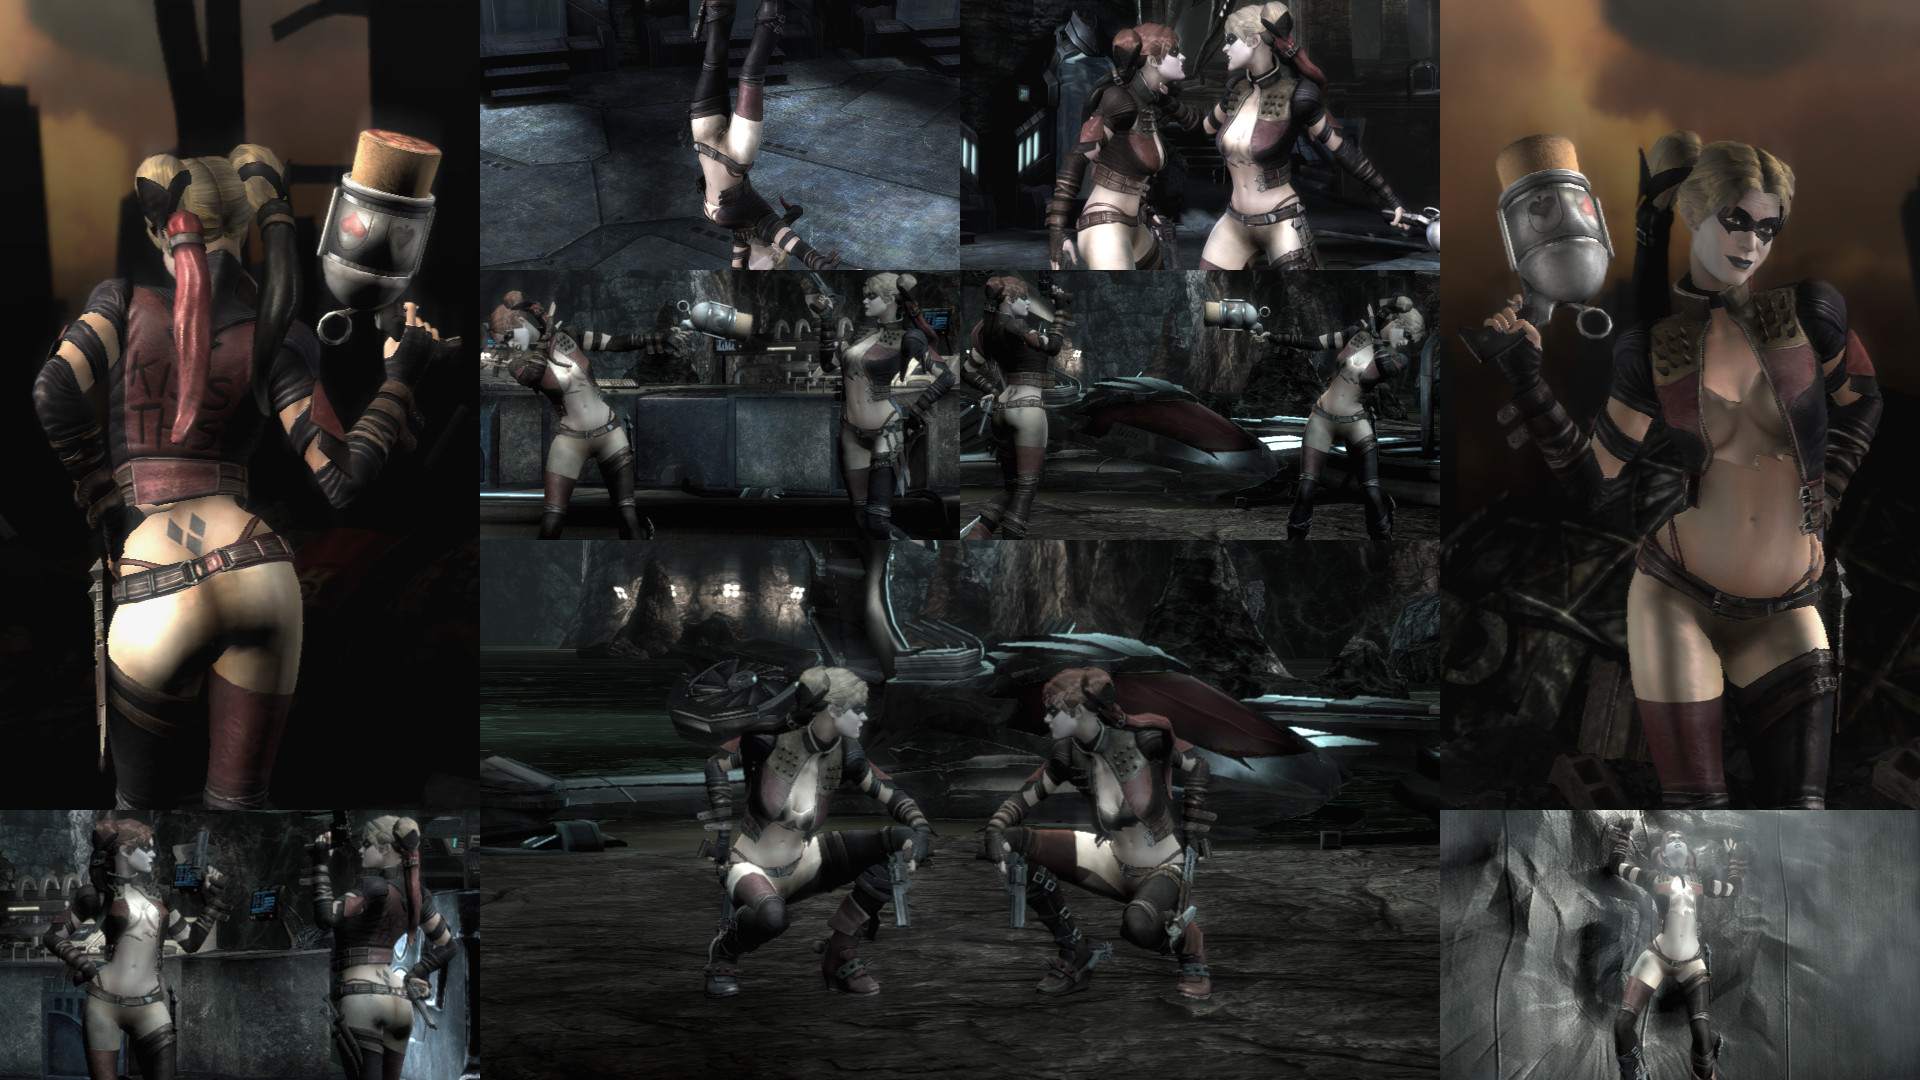 What is the nude code for catwoman  adult clips